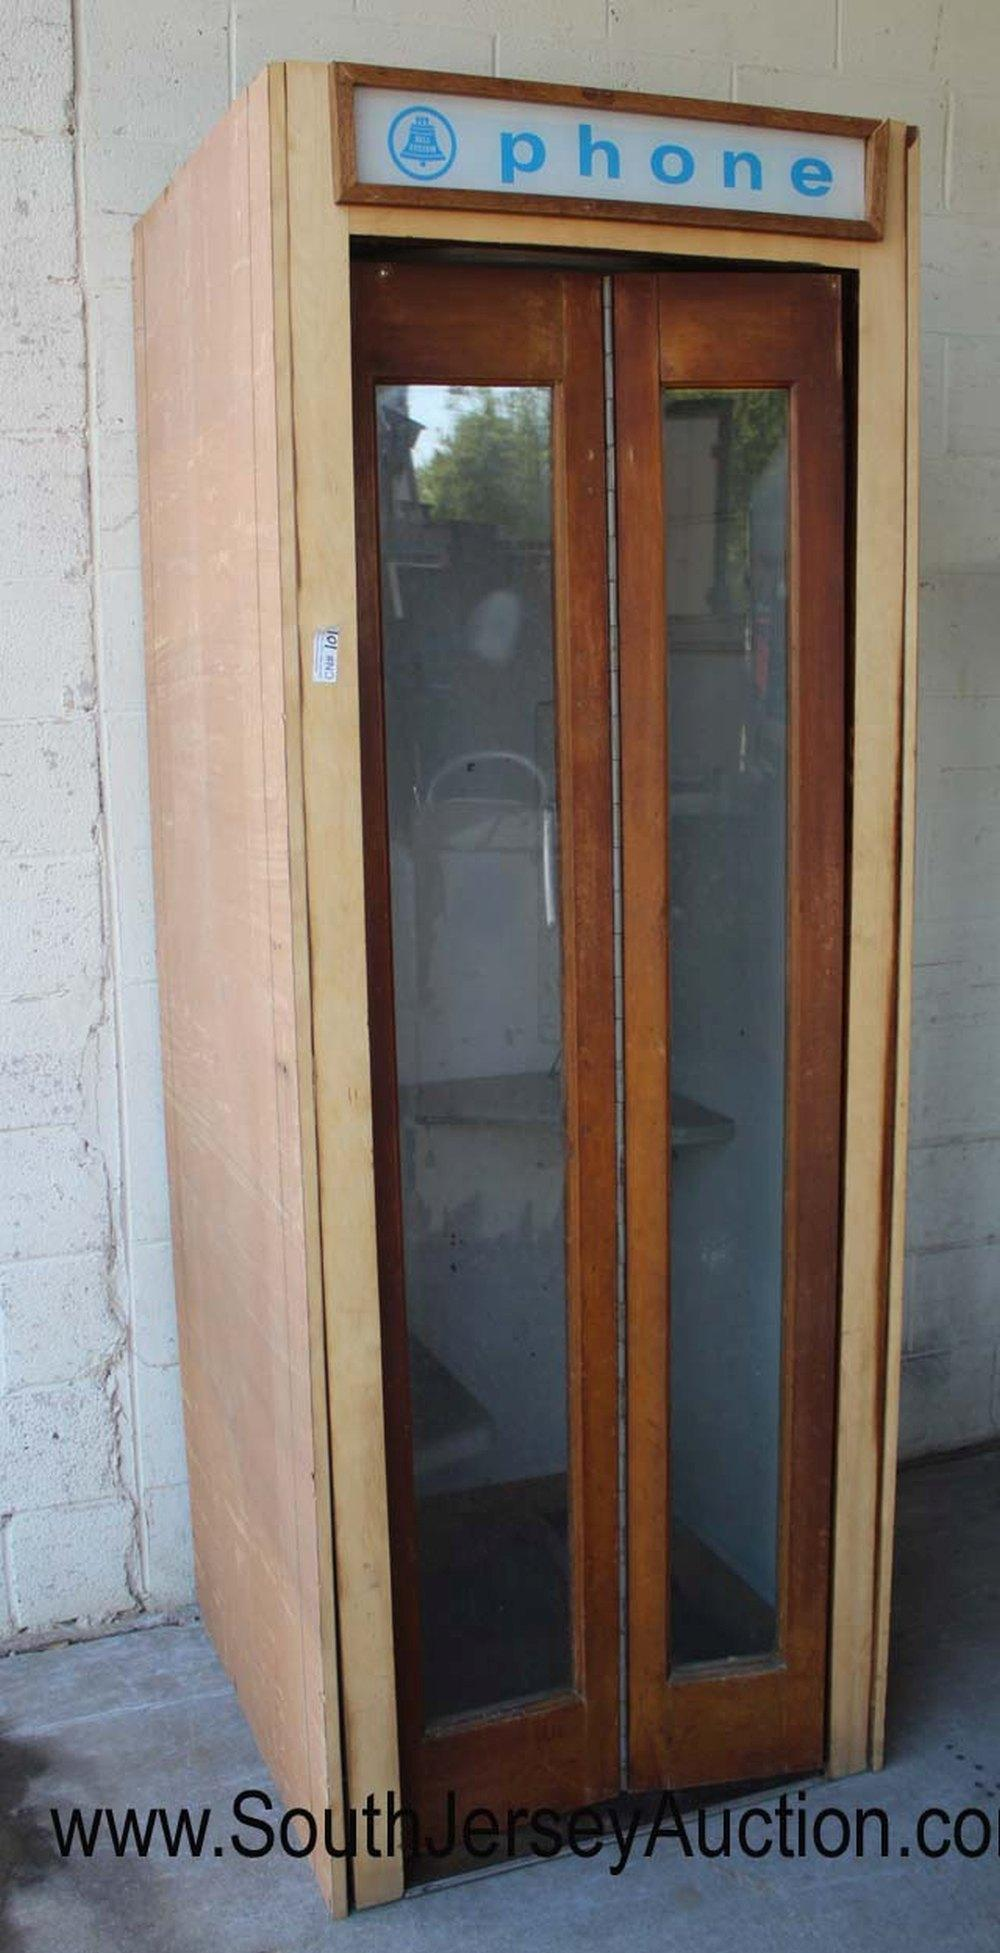 Vintage Mahogany Case Bell Telephone Booth with Original Sign, Light, and Fan